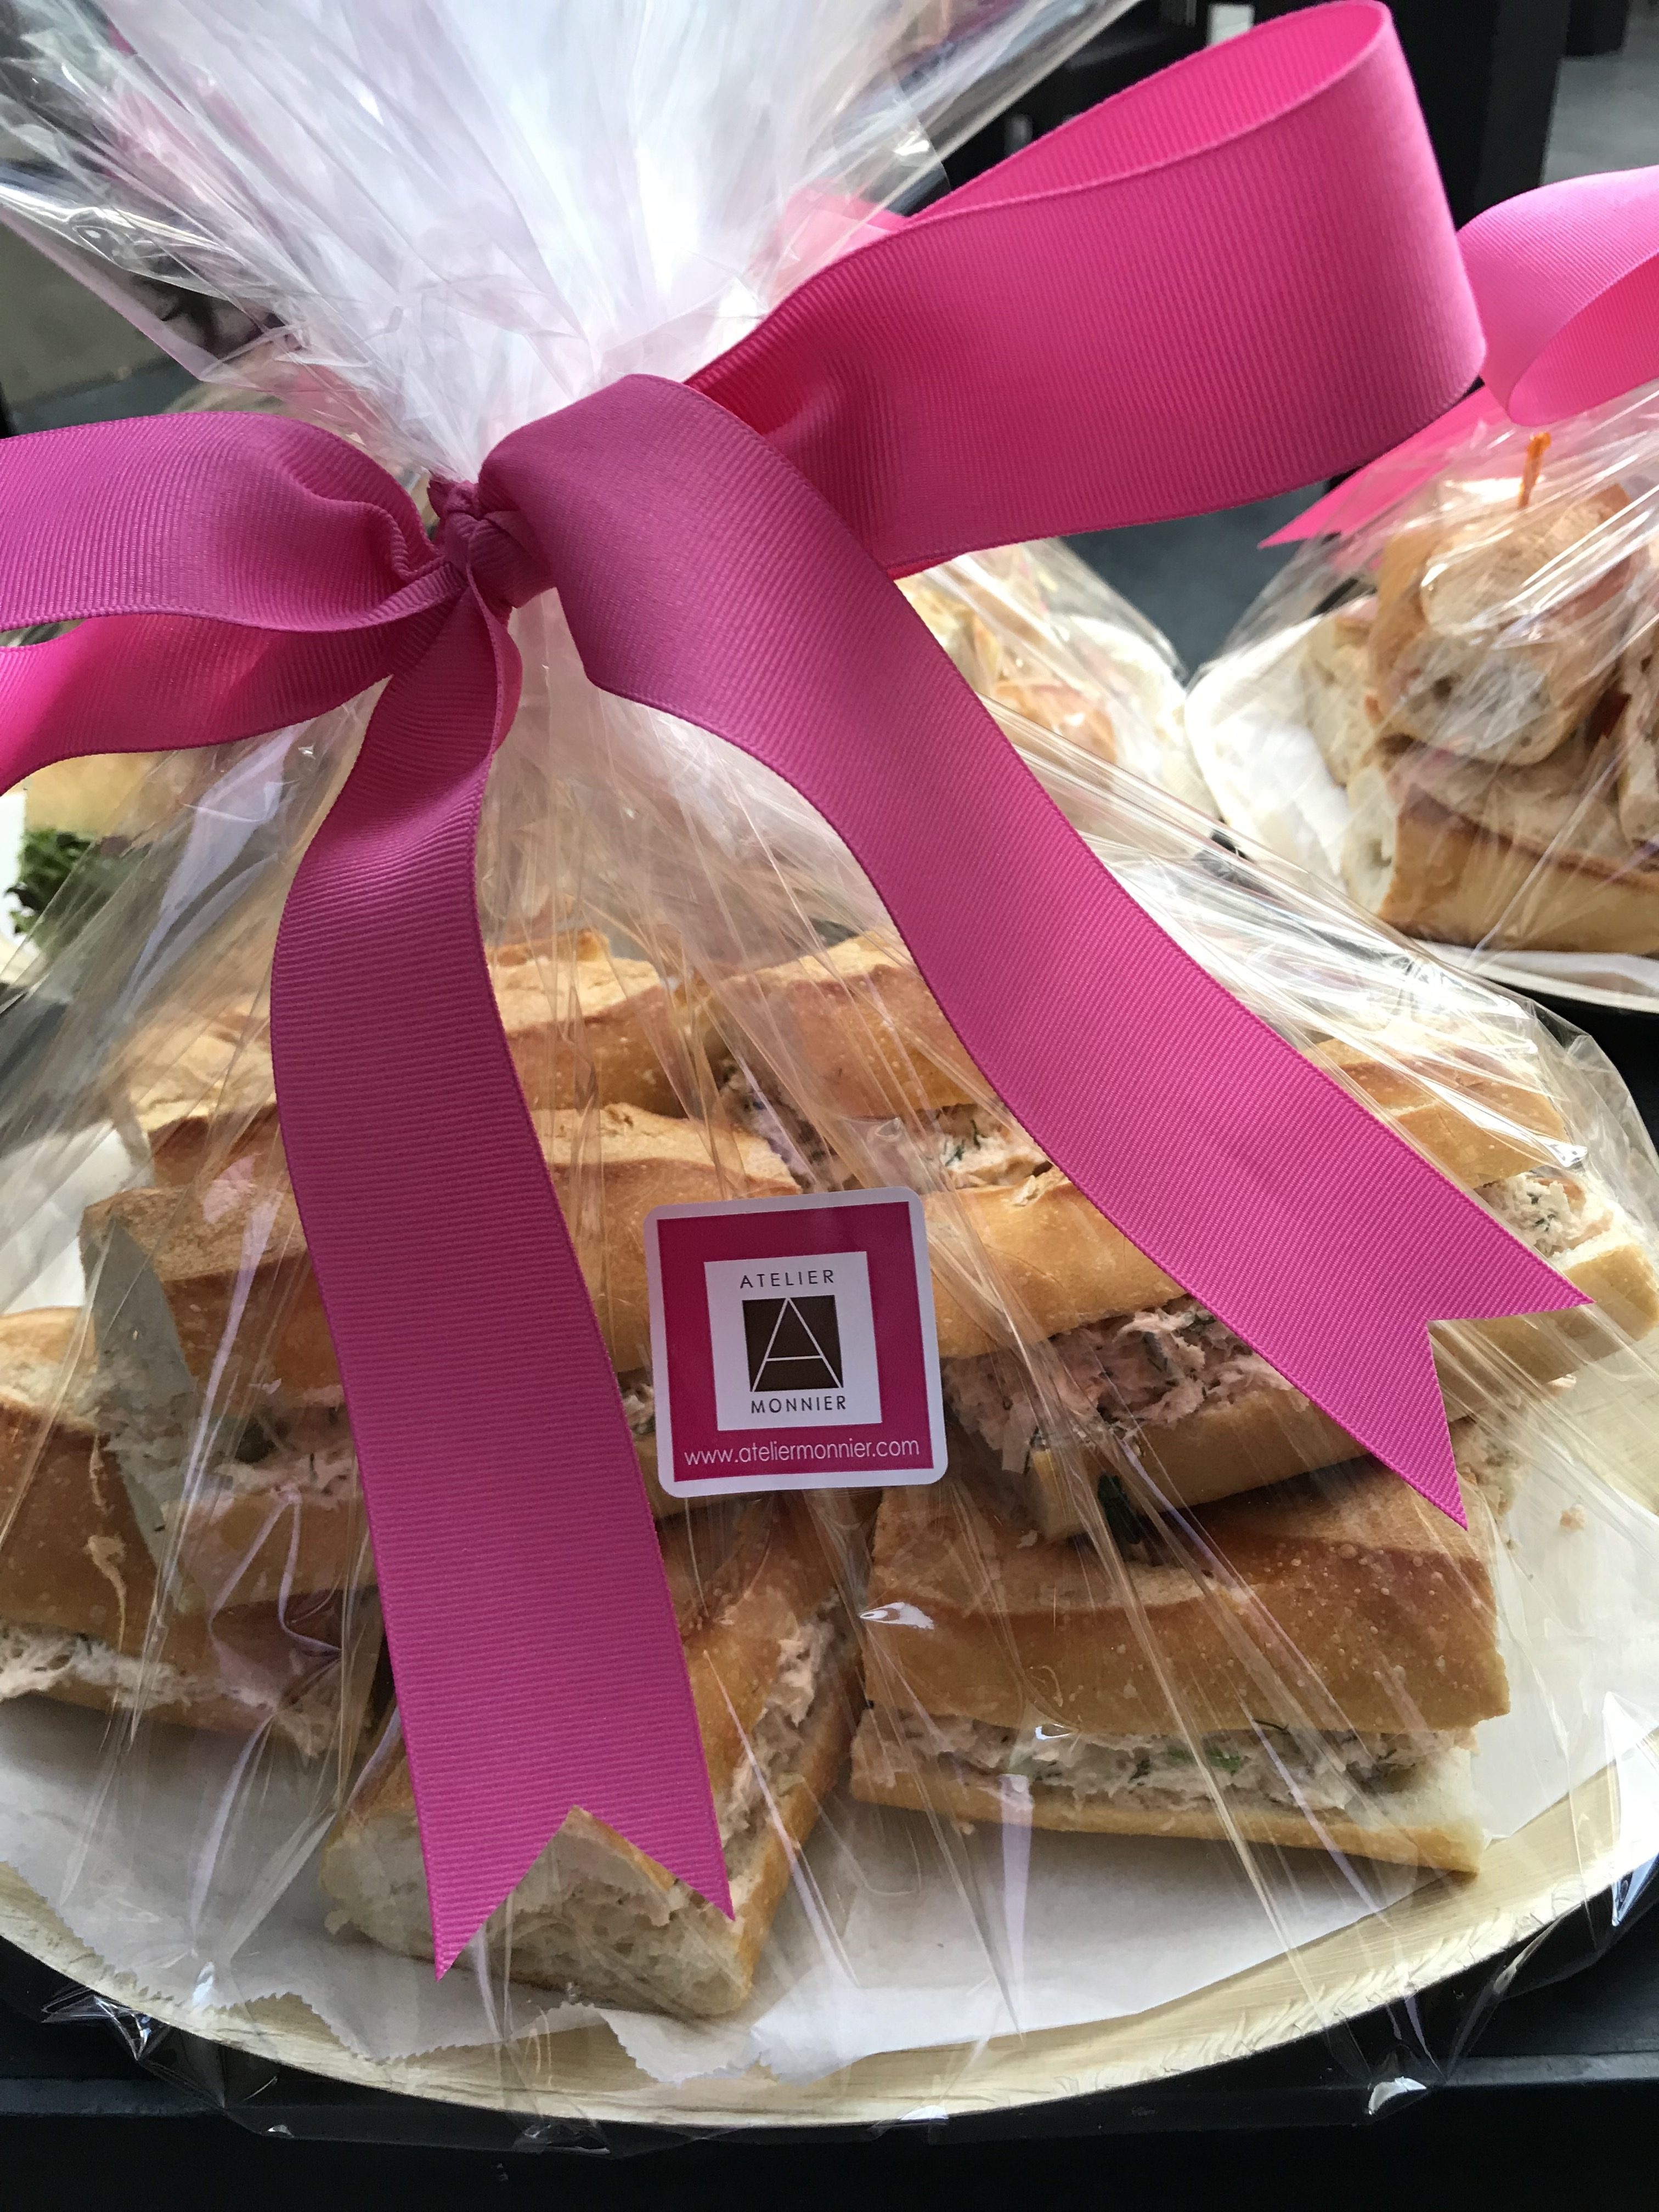 Home - Atelier Monnier - French Bakery & Winery MiamiAtelier Monnier